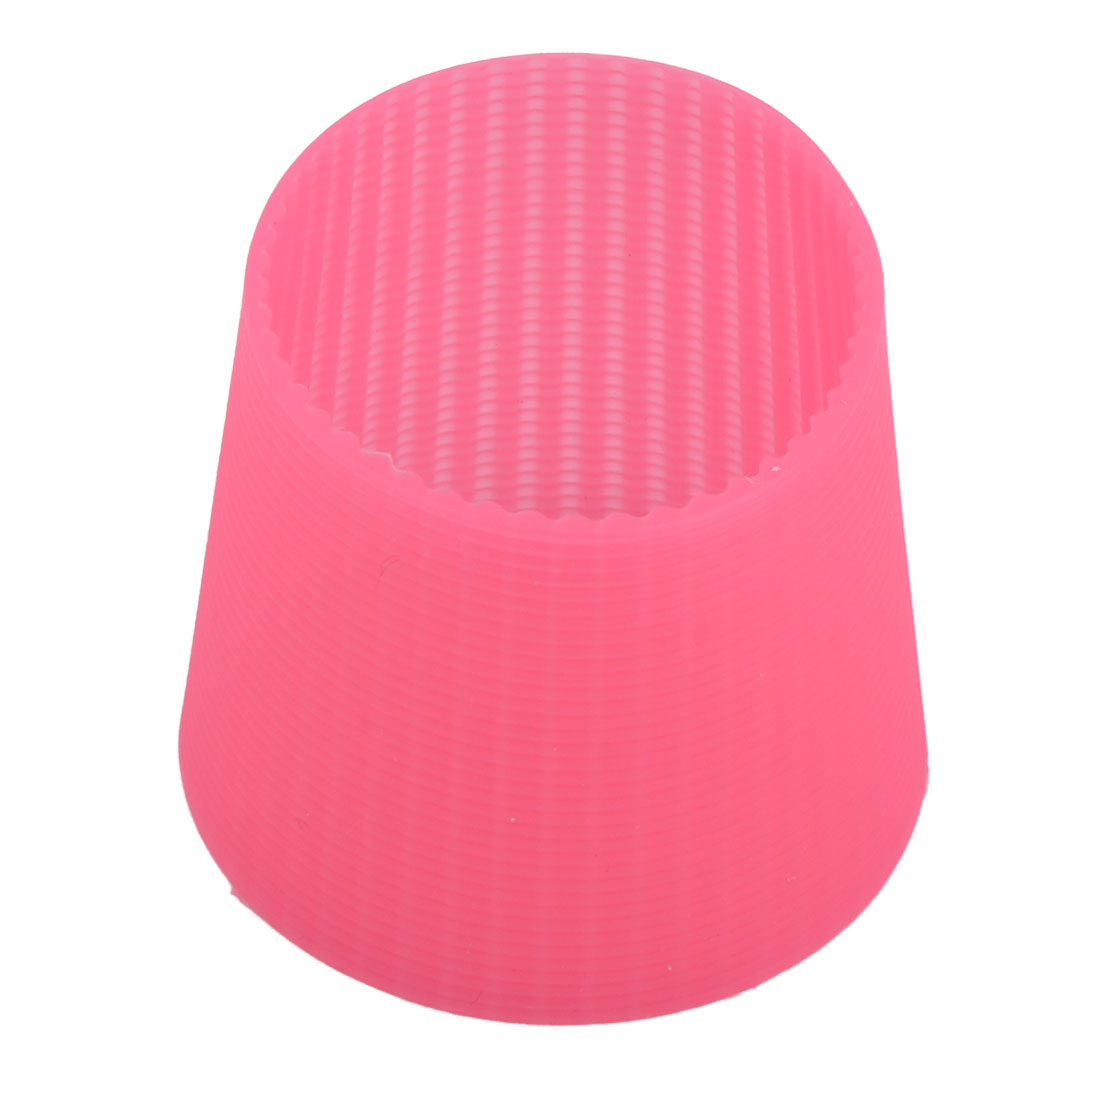 Silicone Round Heat Insulated Glass Cup Bottle Sleeve Cover Protector Fuchsia - image 4 de 4